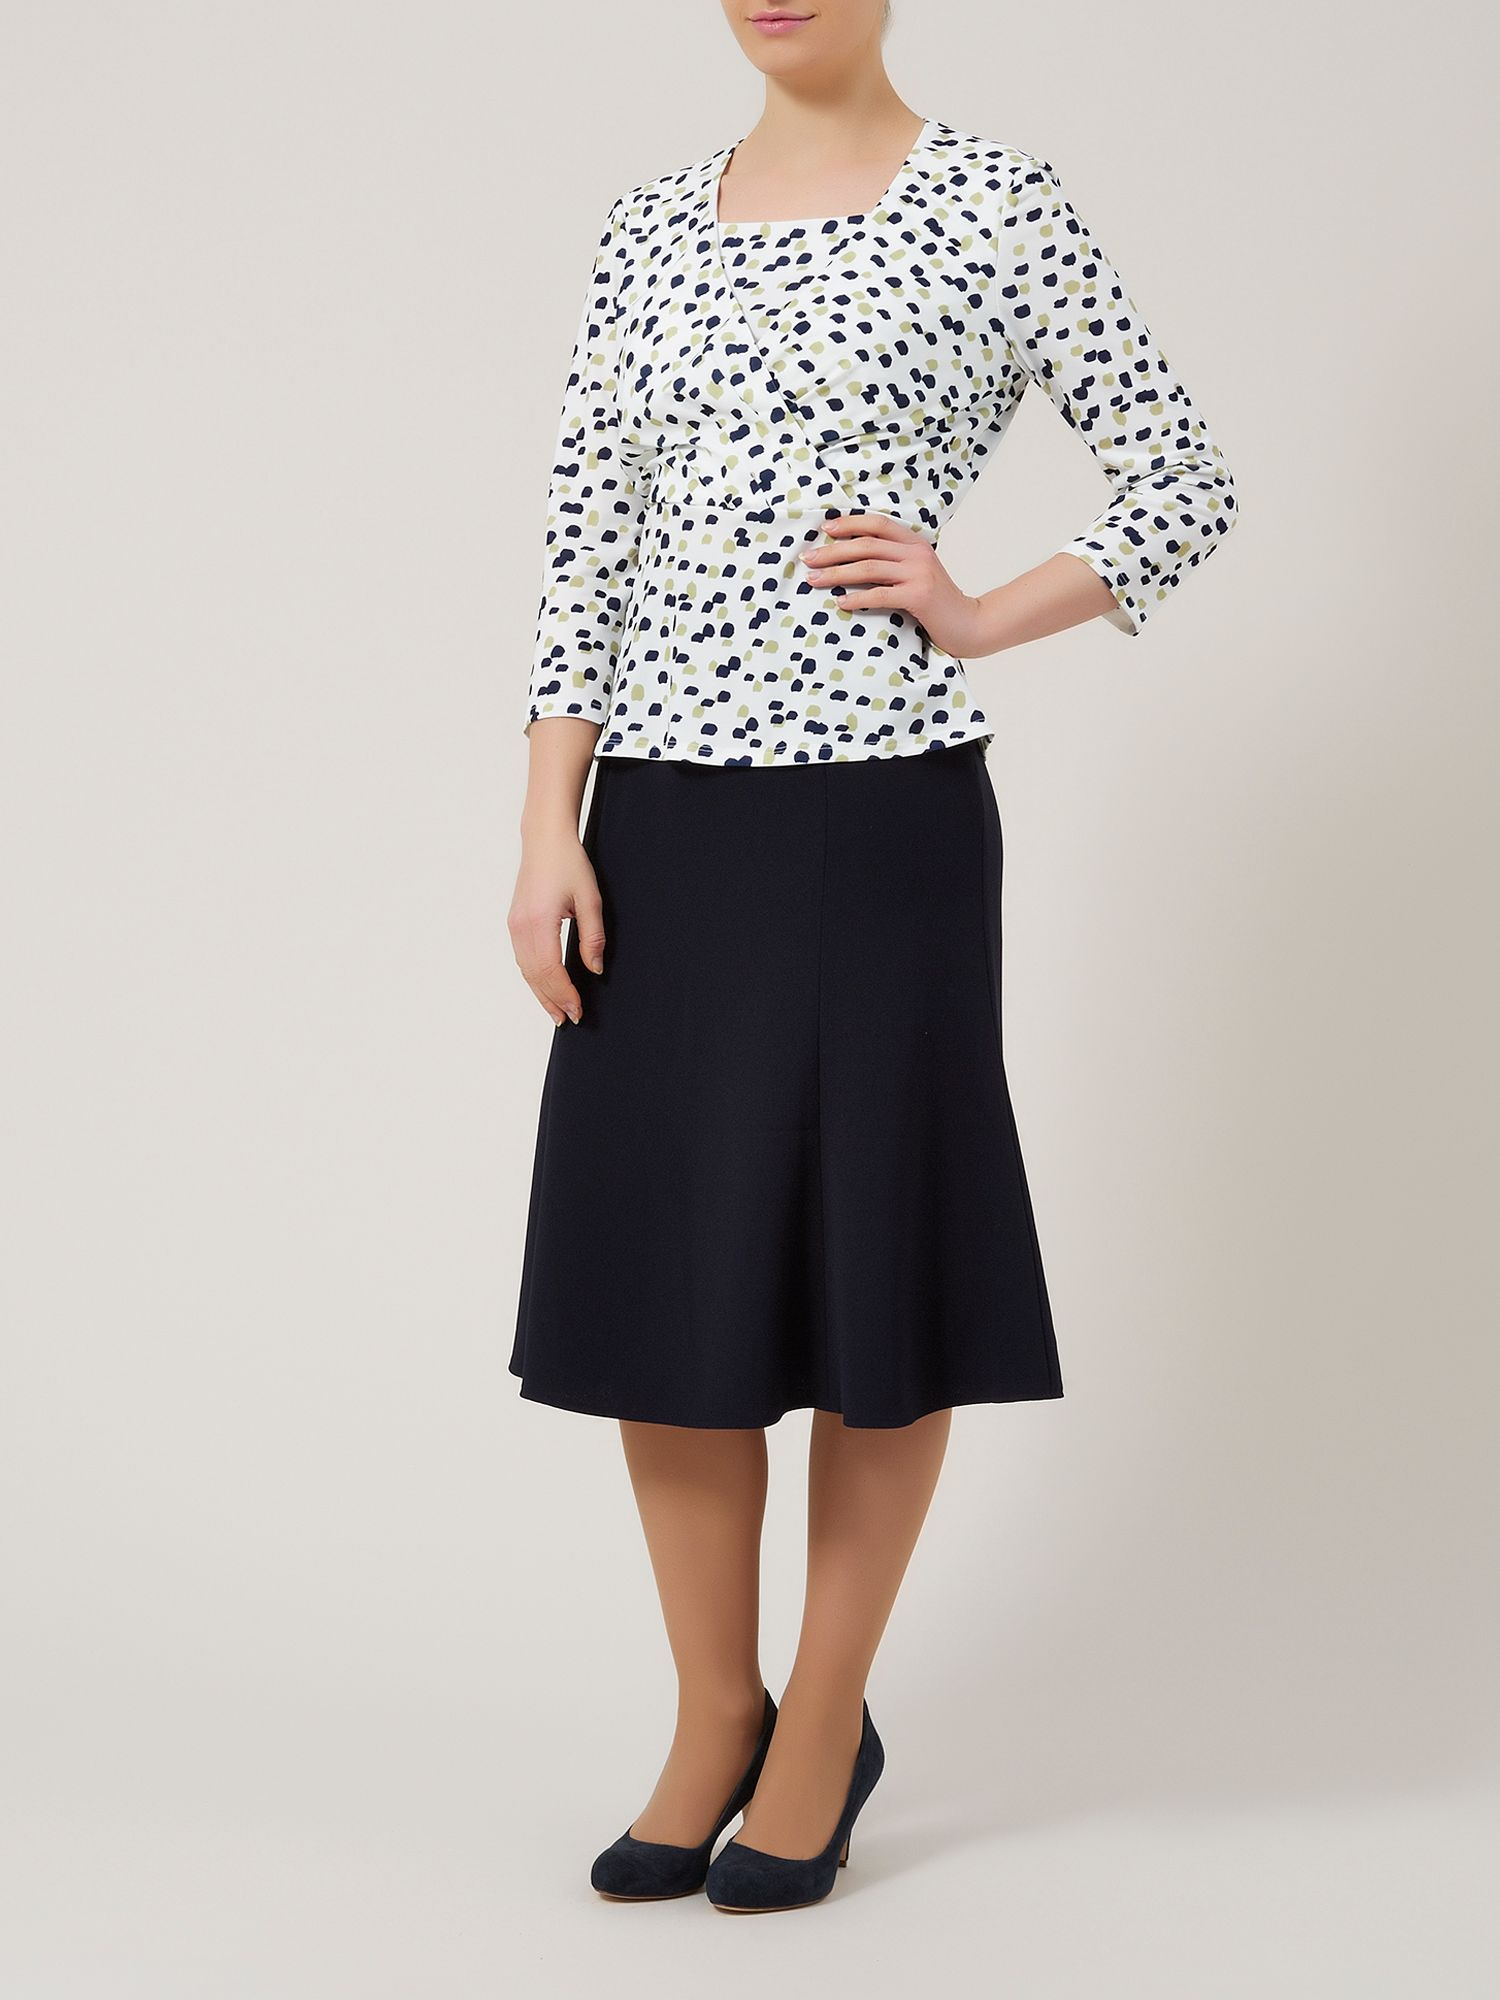 Navy shorter length fit & flare skirt